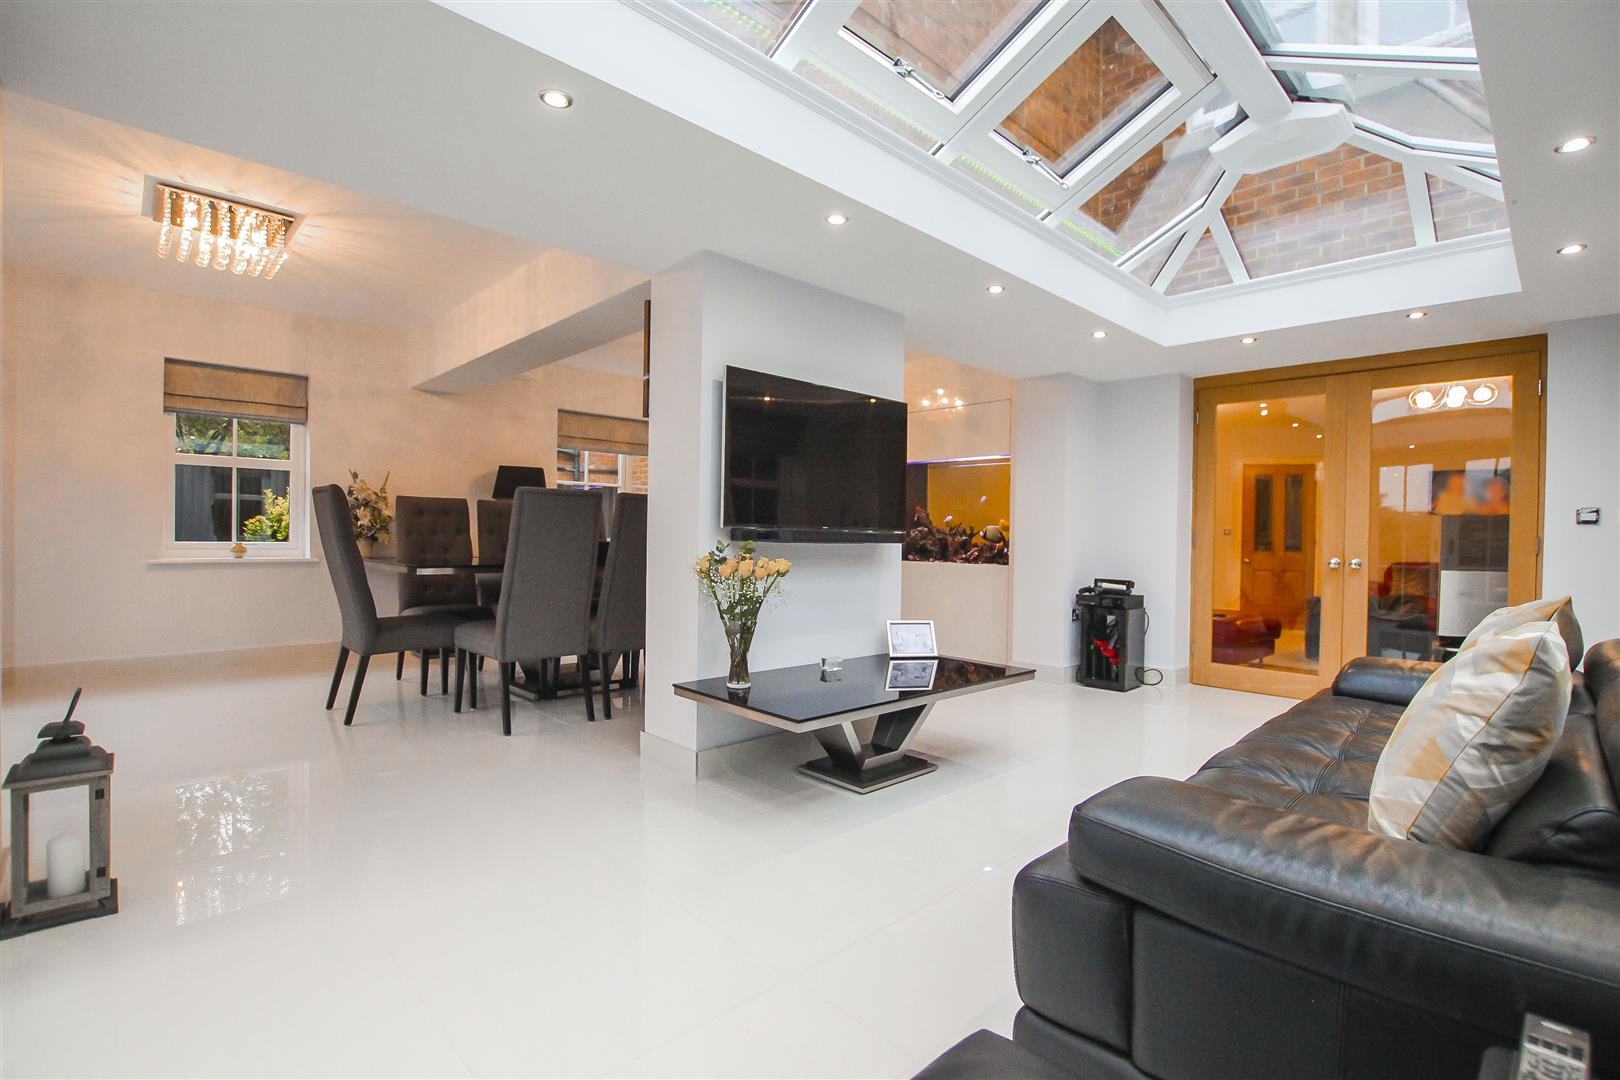 4 Bedroom Detached House For Sale - Family Room